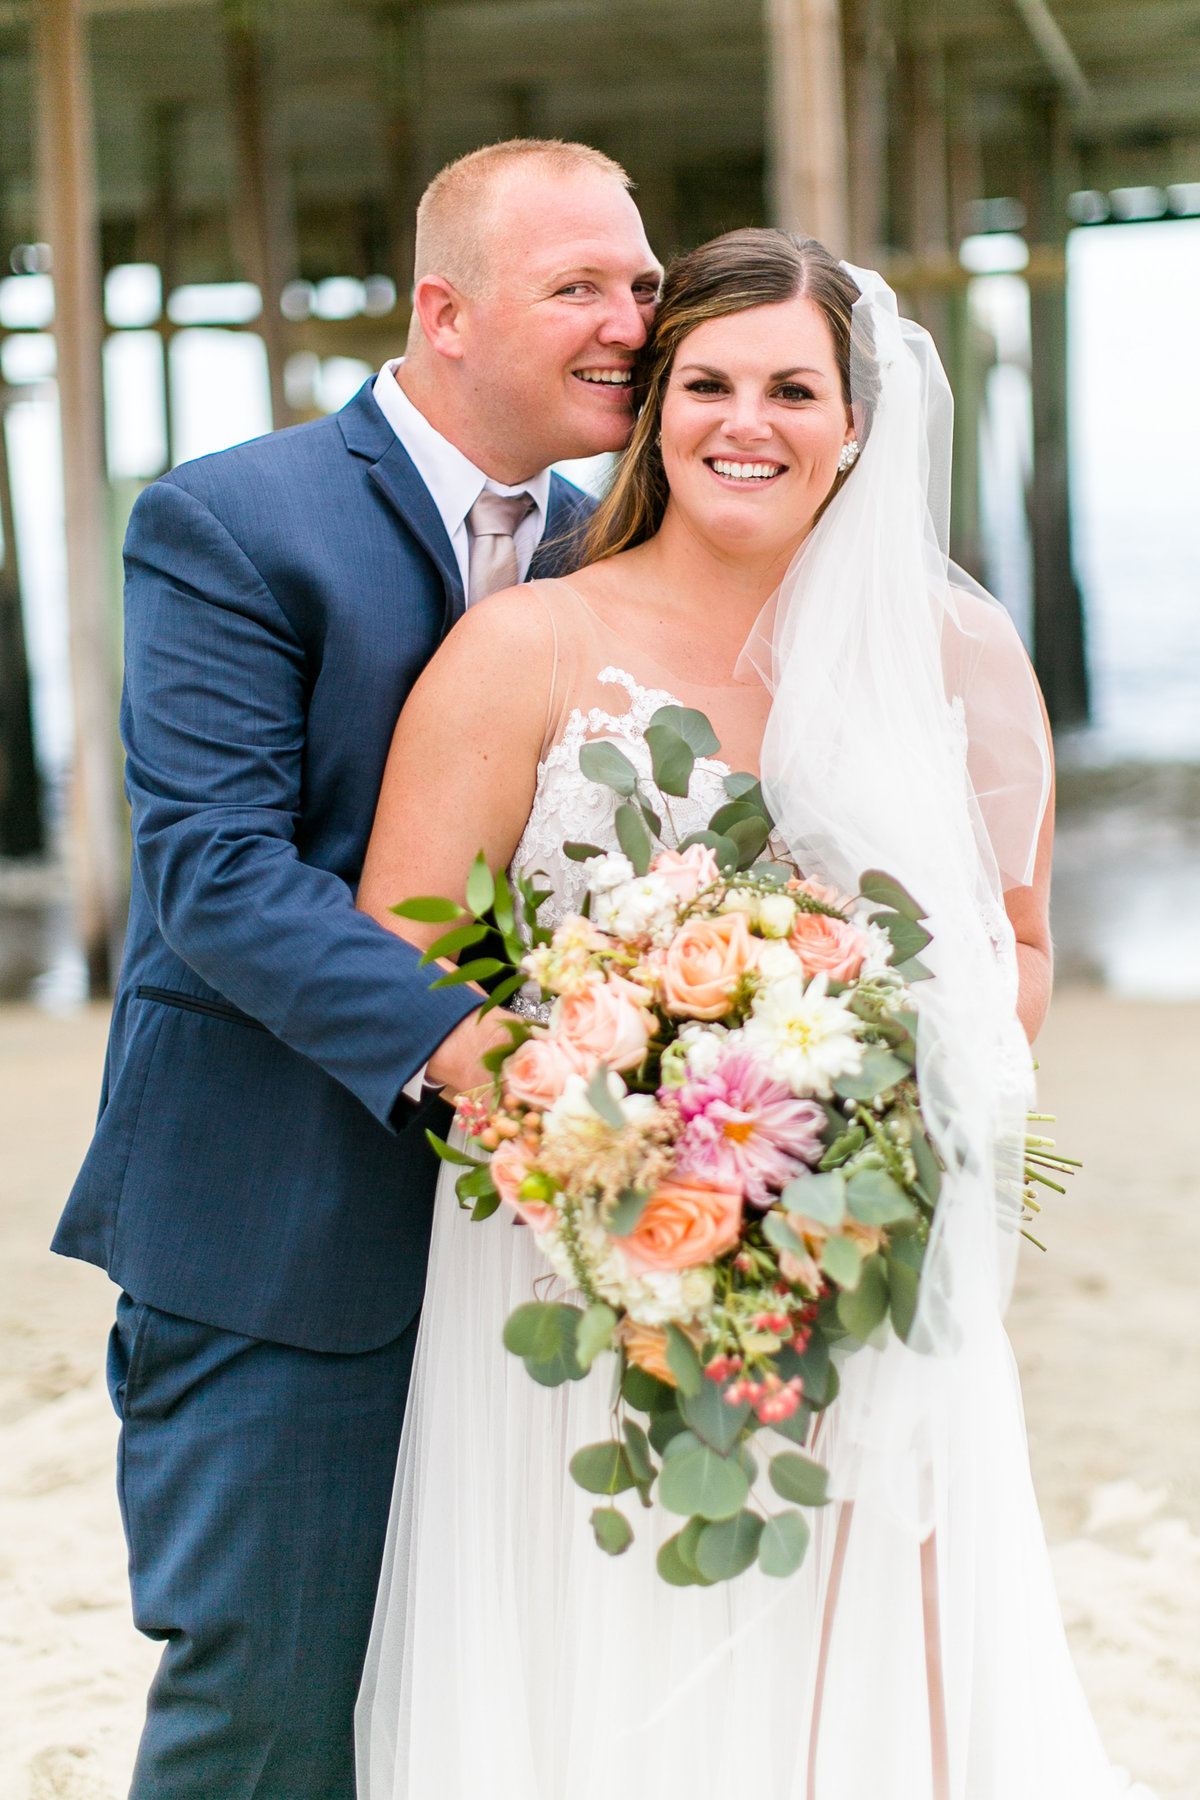 kitty-hawk-pier-outer-banks-obx-wedding-photo-amanda-hedgepeth-80